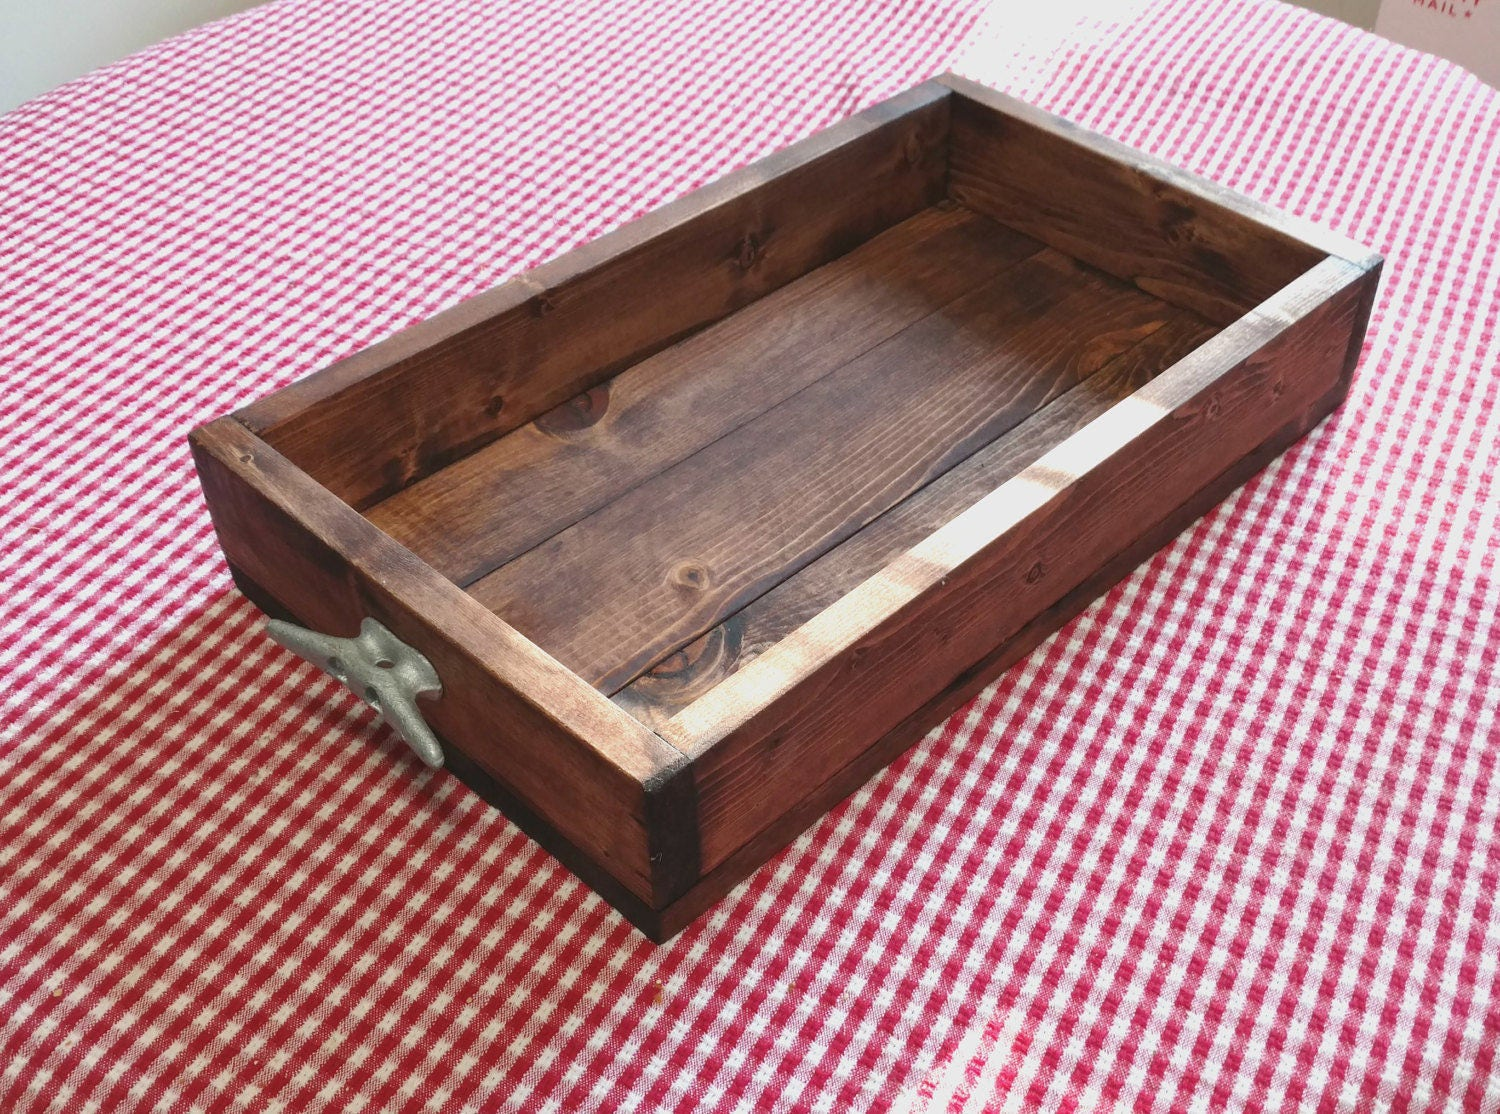 Rustic Wood Tray Coffee Table Box Serving Tray Wedding Decor